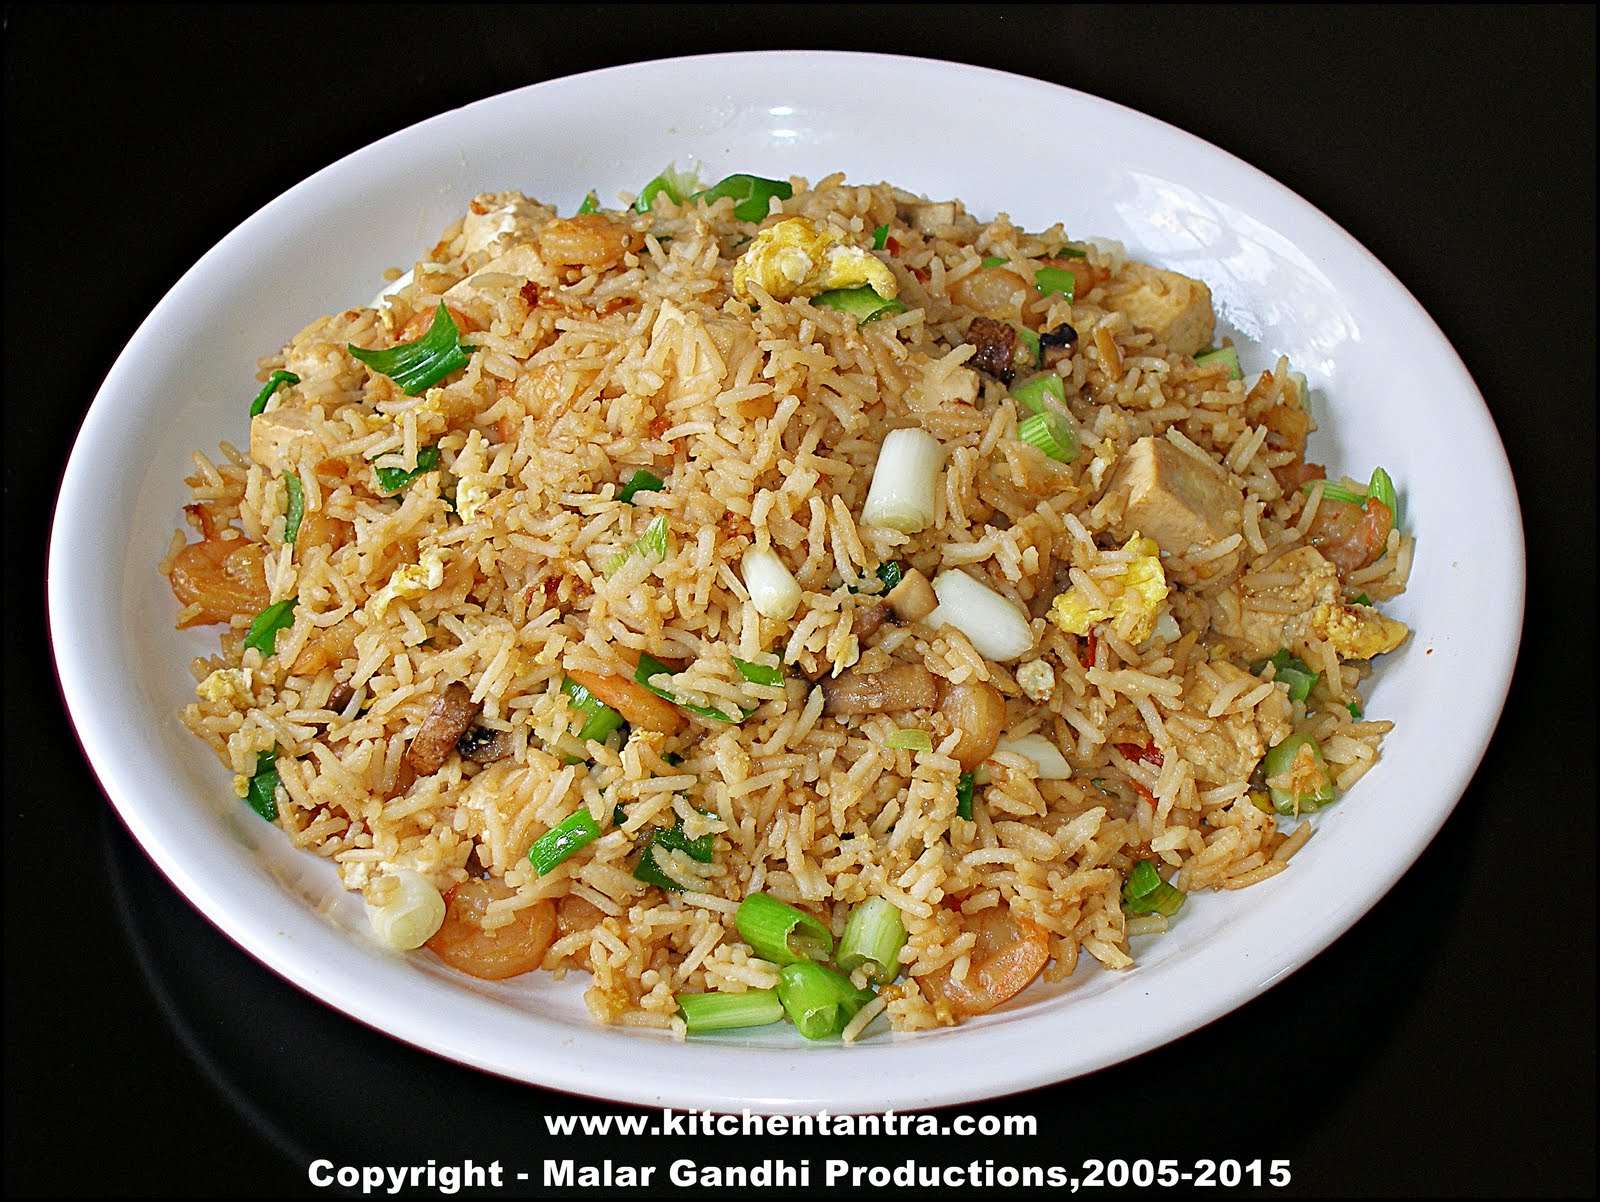 Indo-Chinese Fried Rice: